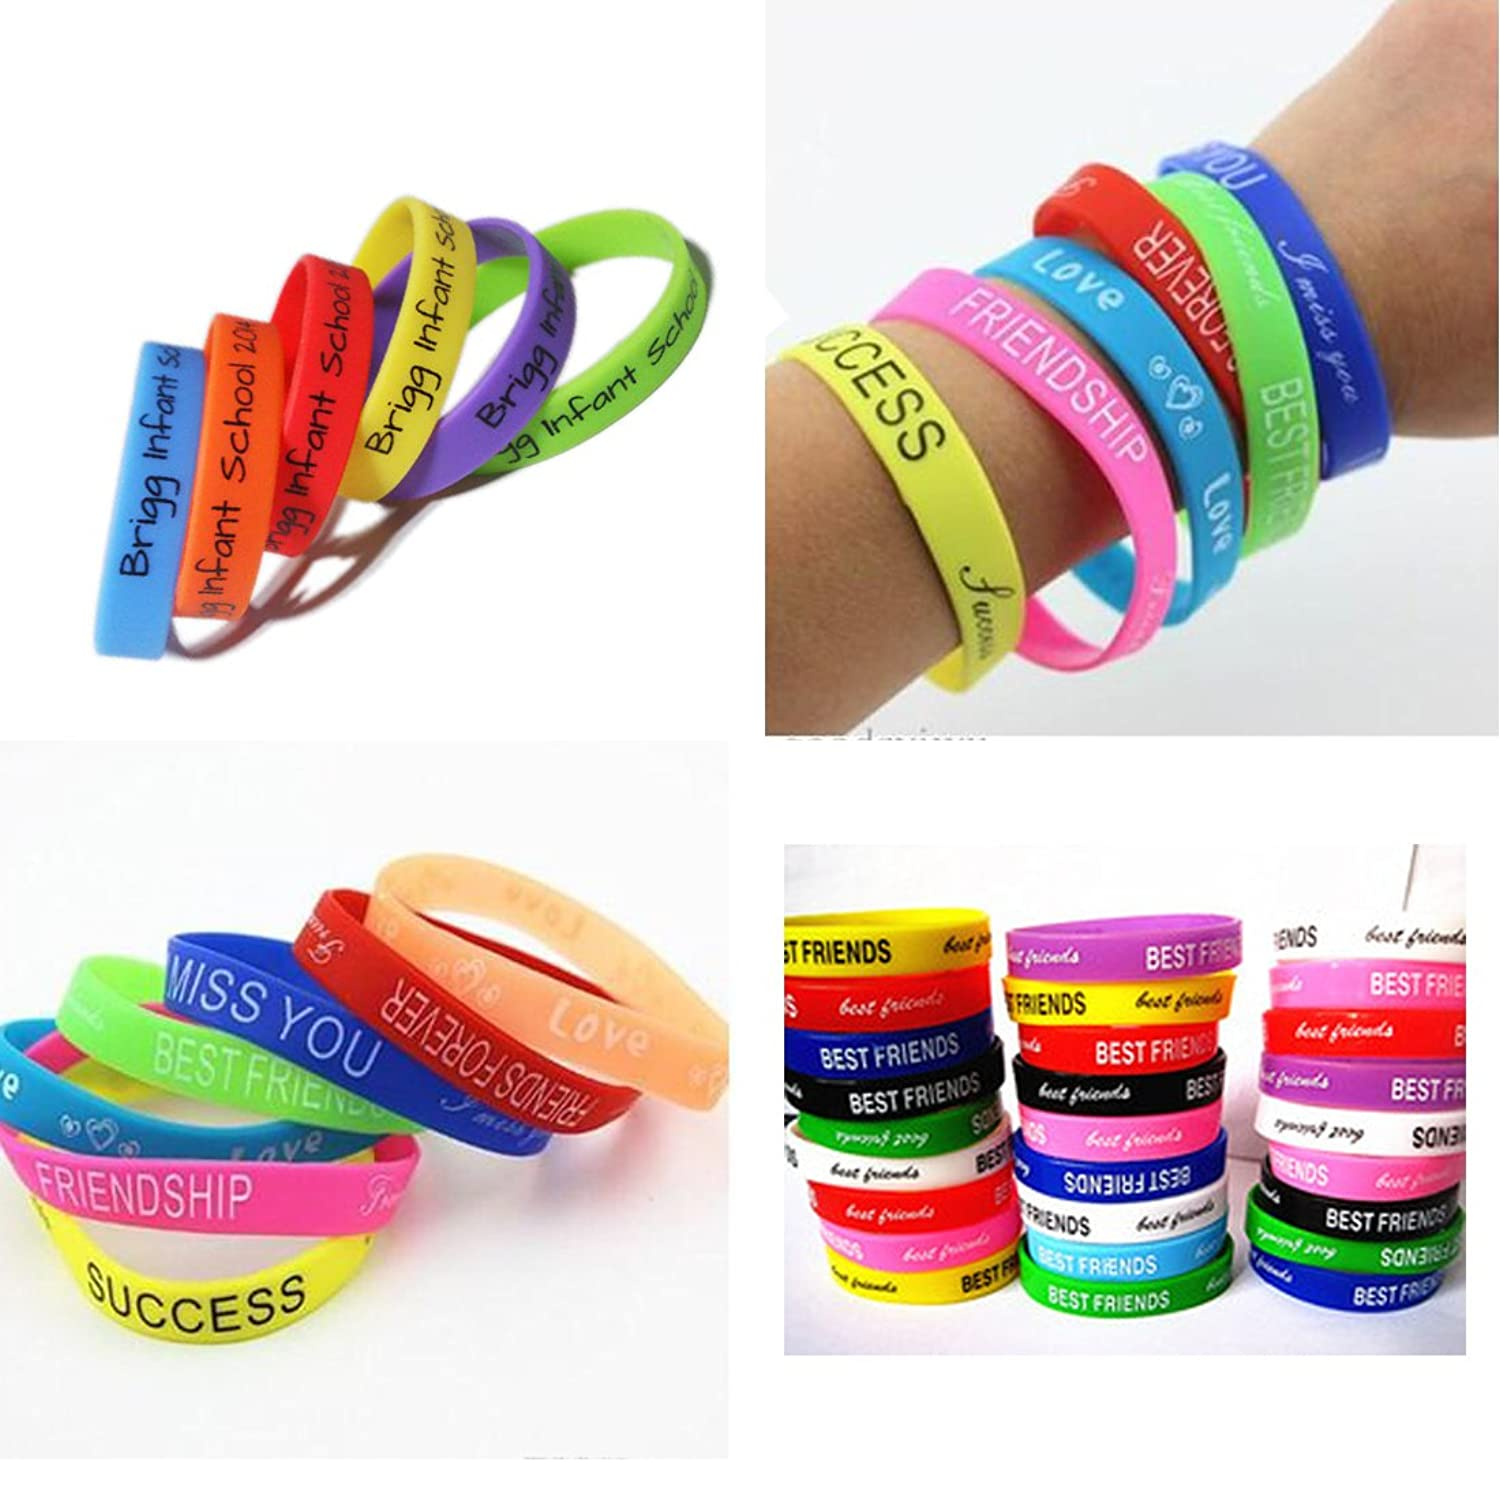 Casual Wrap 8 Friendship Band Rubber bracelet Mixed Fashion Candy